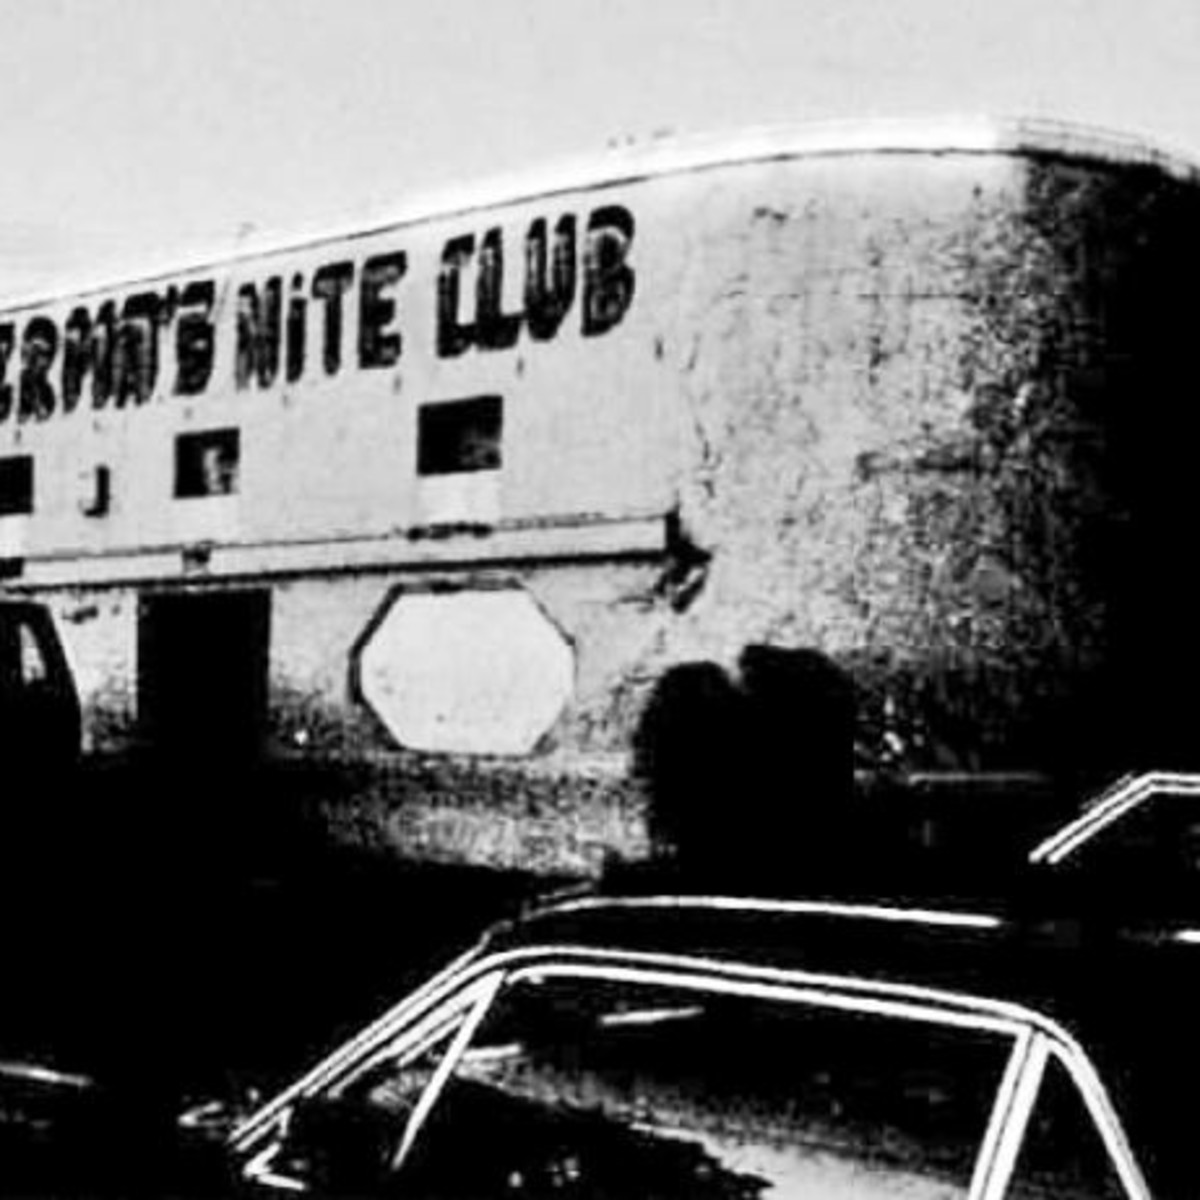 Lerma's Nite Club has long been a famed live conjunto music venue on San Antonio's West Side.C